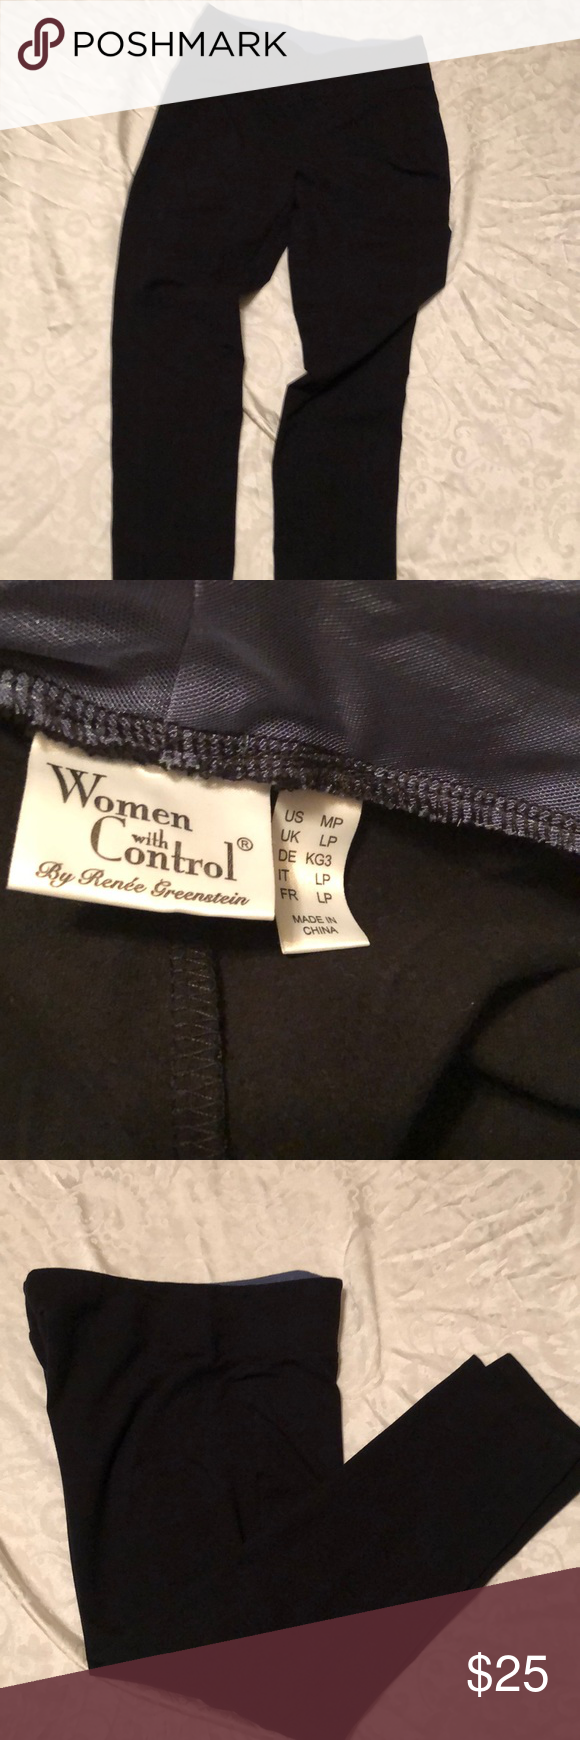 12930ea251aa Women With Control Spandex Pant. These are brand new. Never been worn. QVC